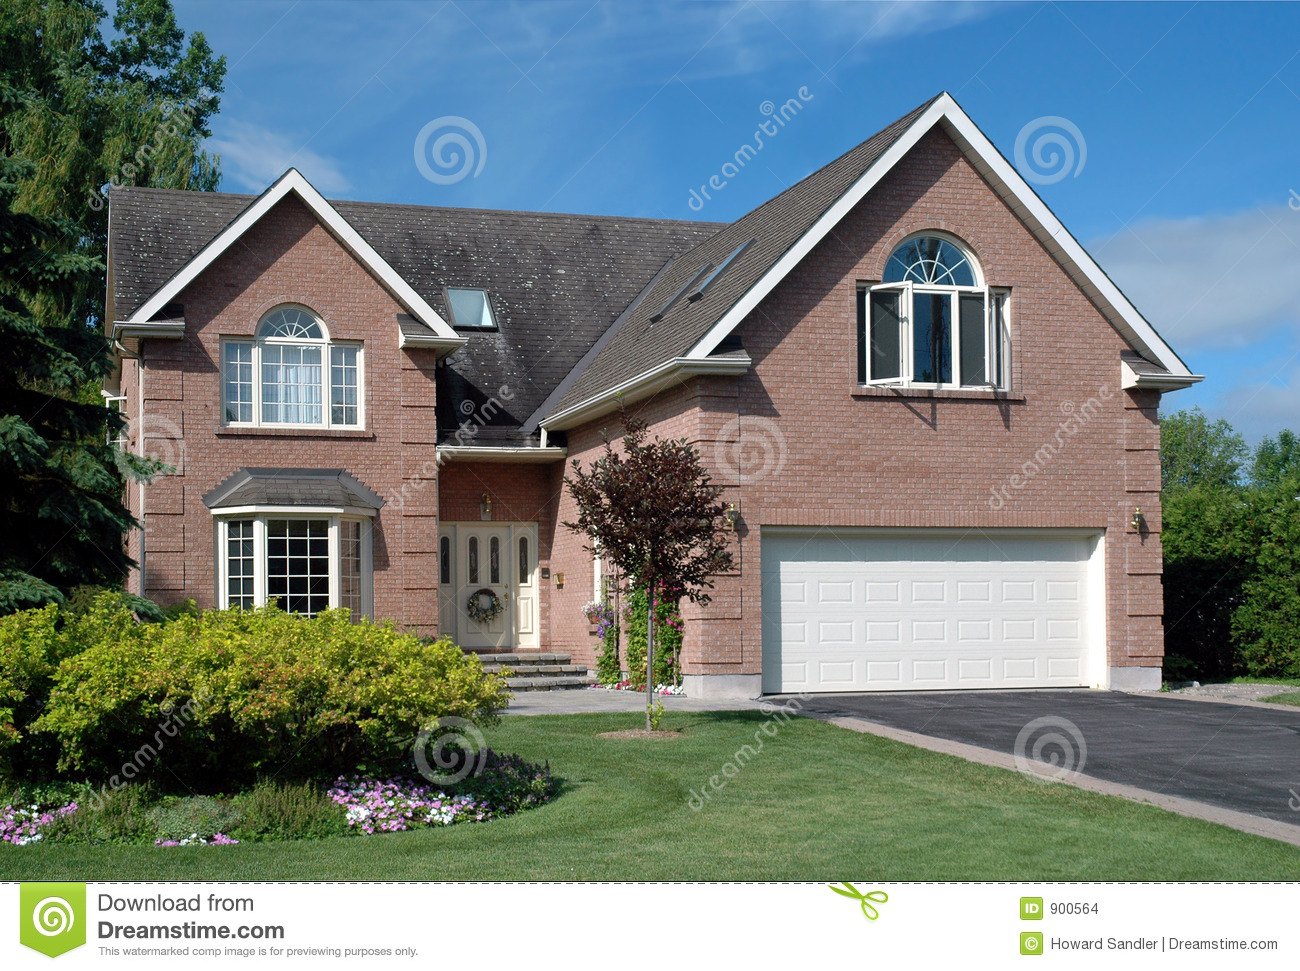 Large brick suburban house with attached garage and manicured lawn.